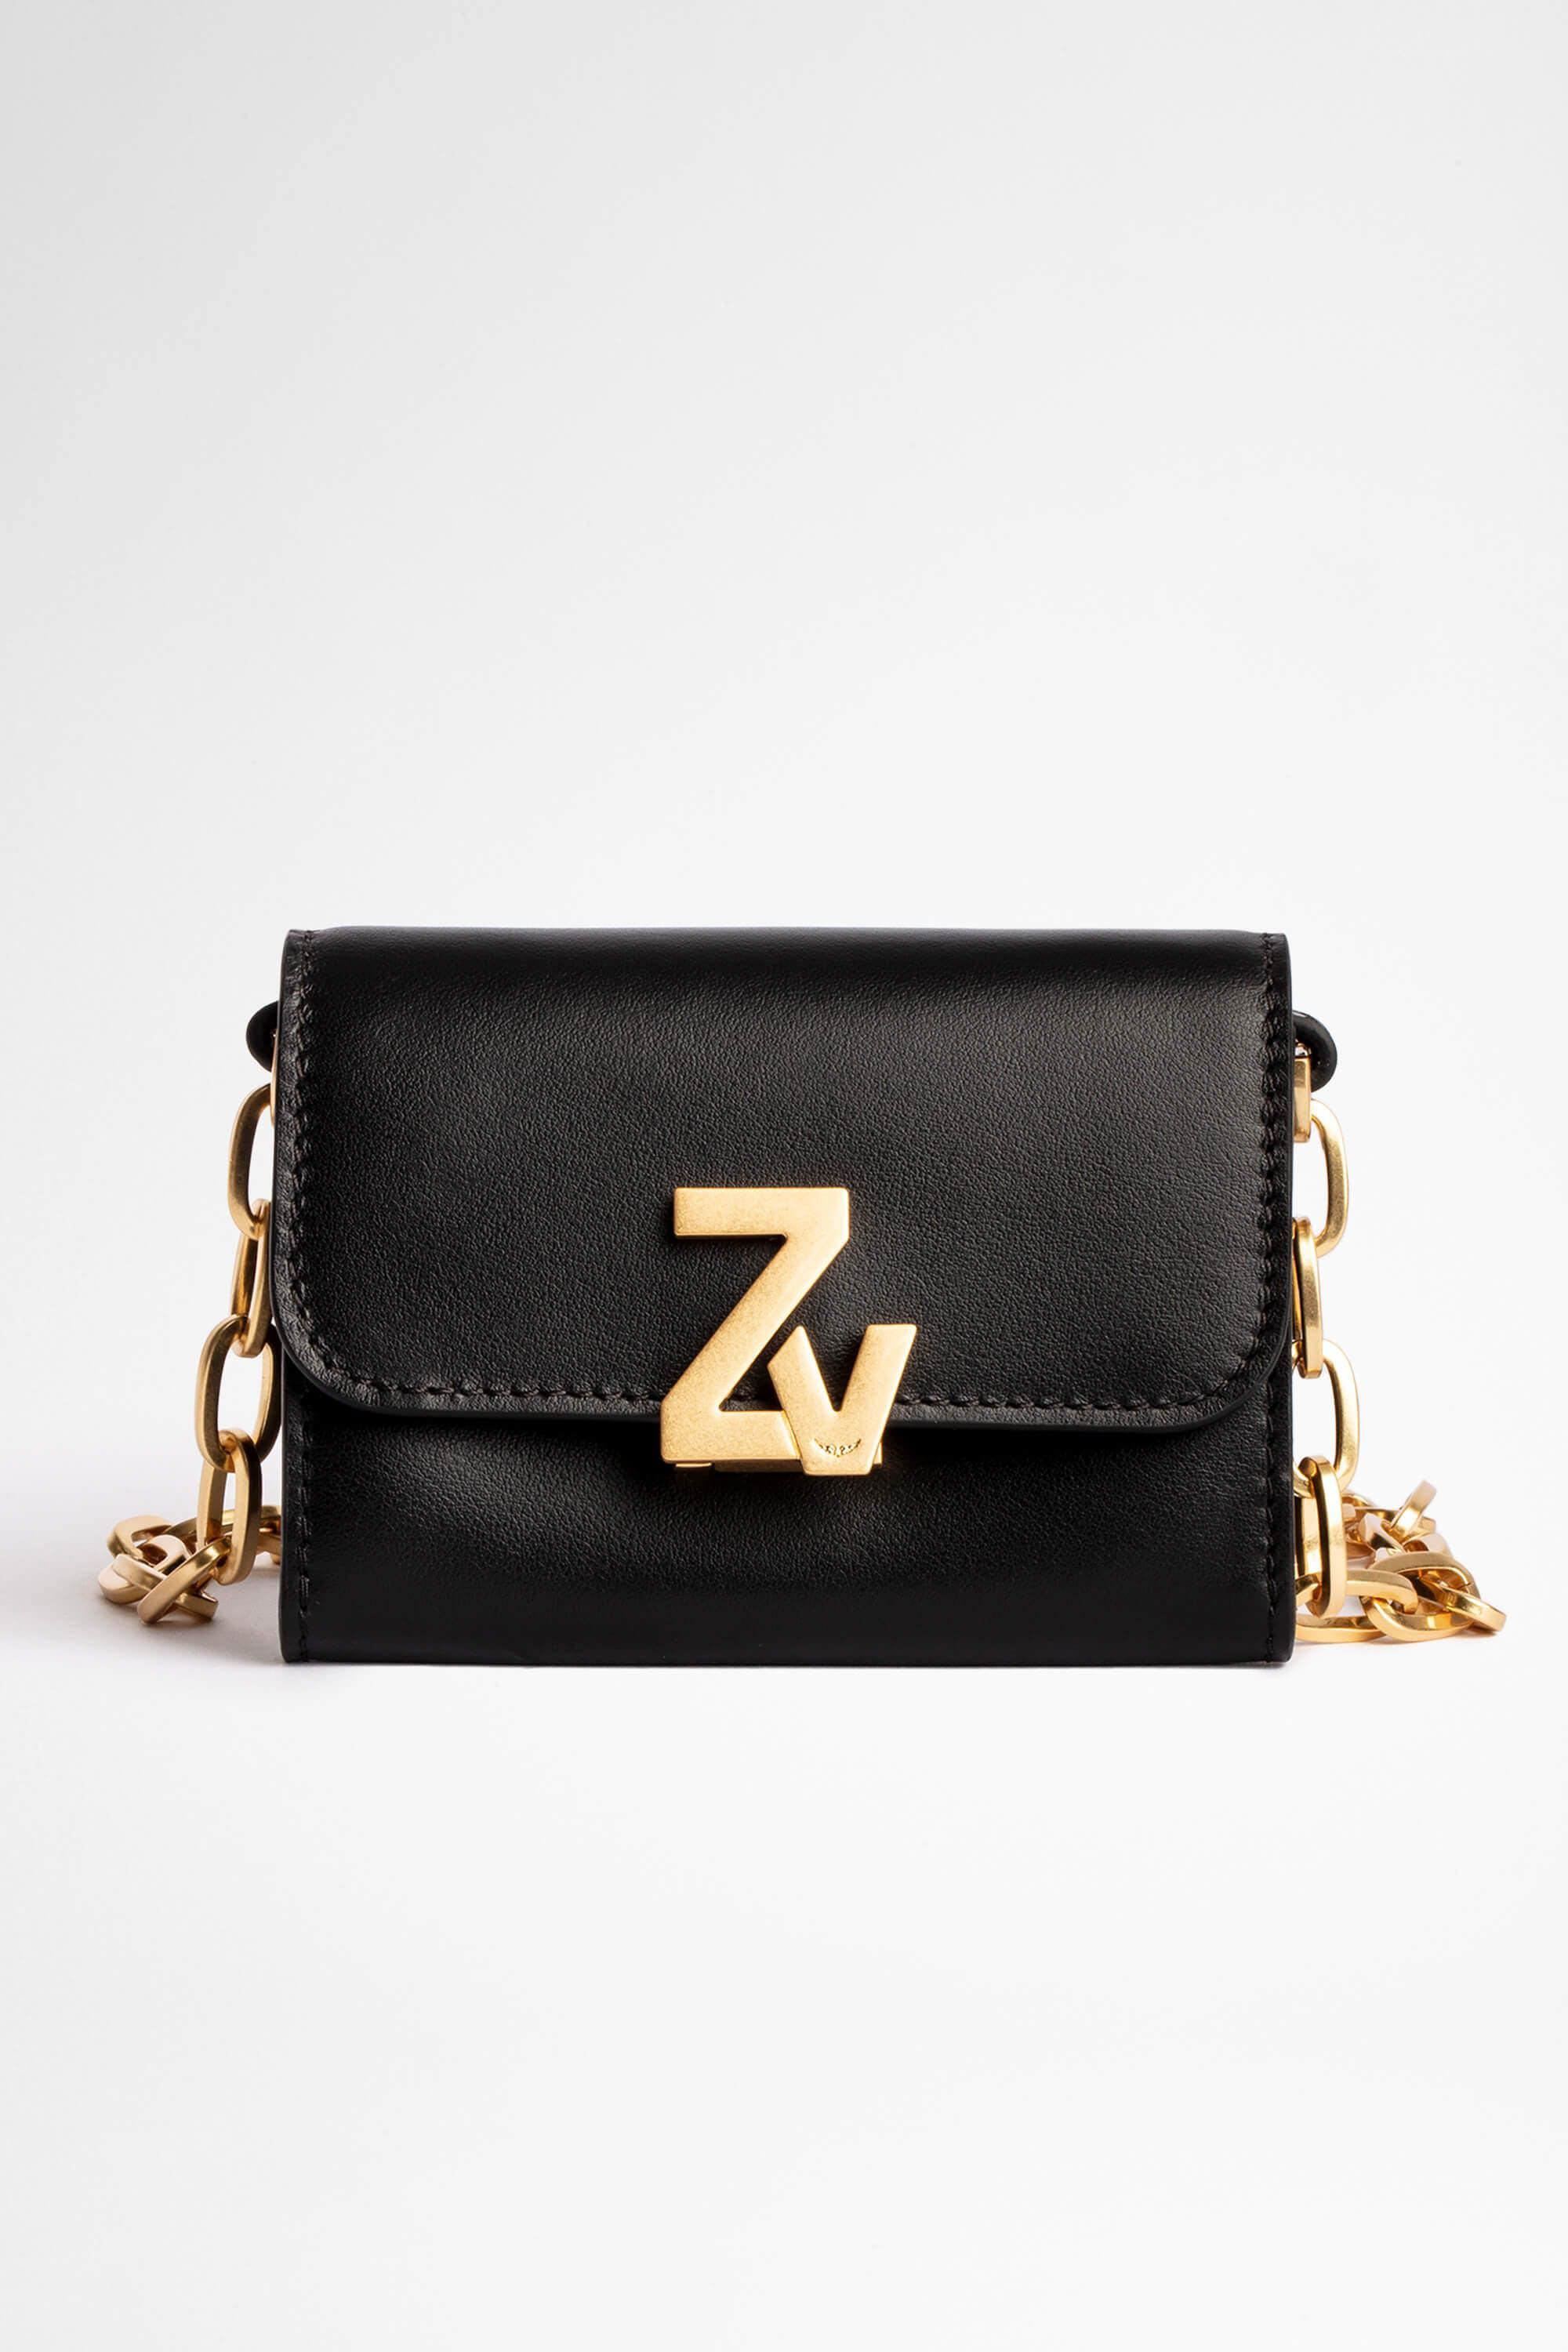 ZV Initiale Le Tiny Wallet